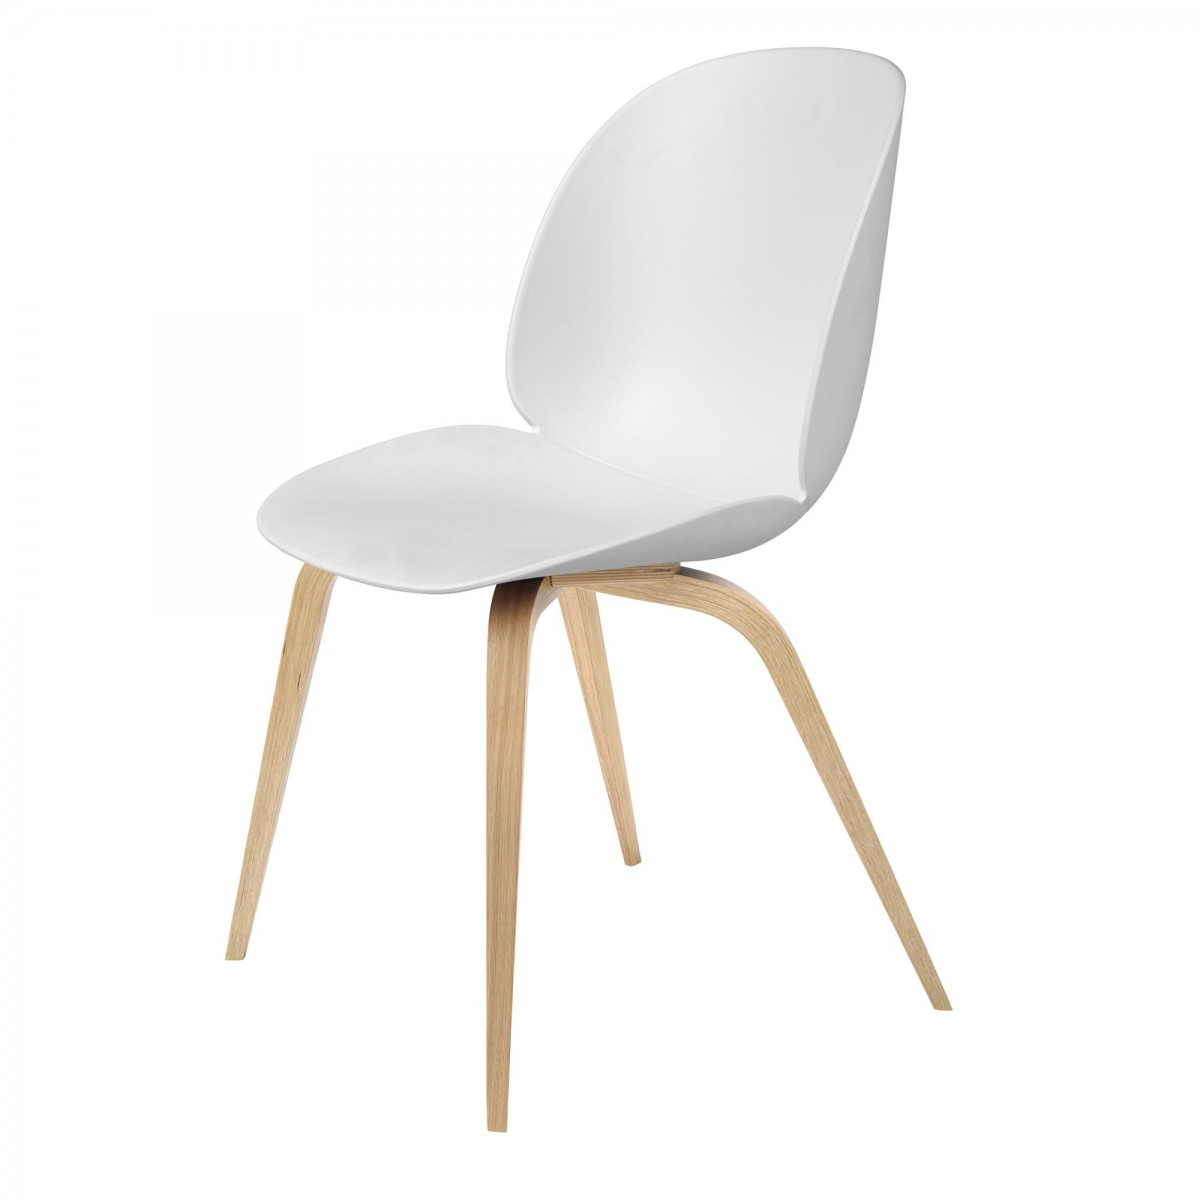 oak and white dining chairs standeasy chair lift beetle gubi